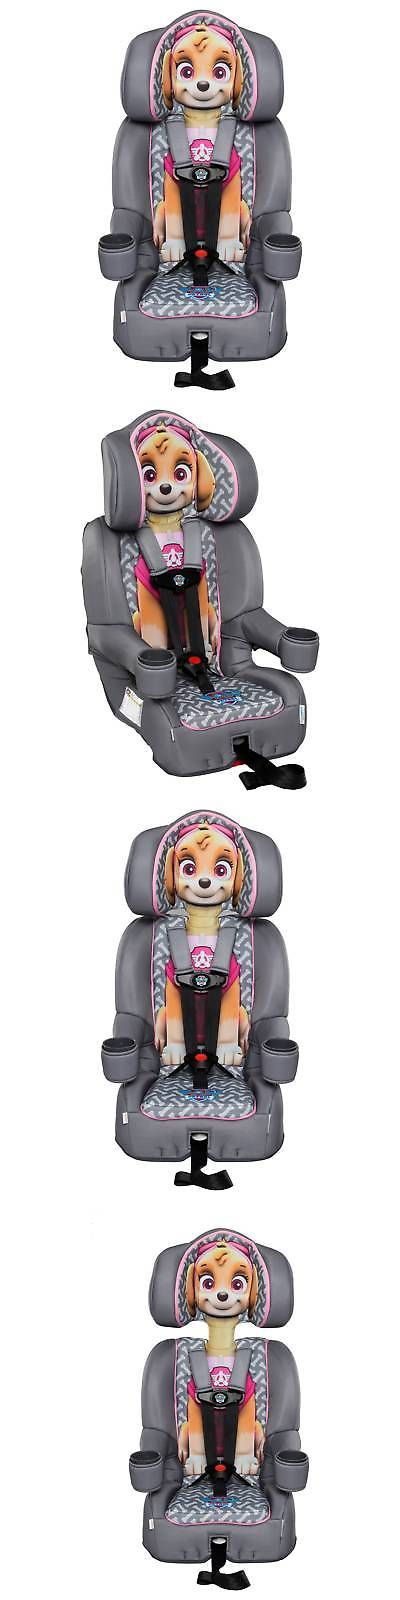 Booster To 80lbs 66694 Kidsembrace Nickelodeon Paw Patrol Skye Combination Harness Car Seat BUY IT NOW ONLY 12749 On EBay